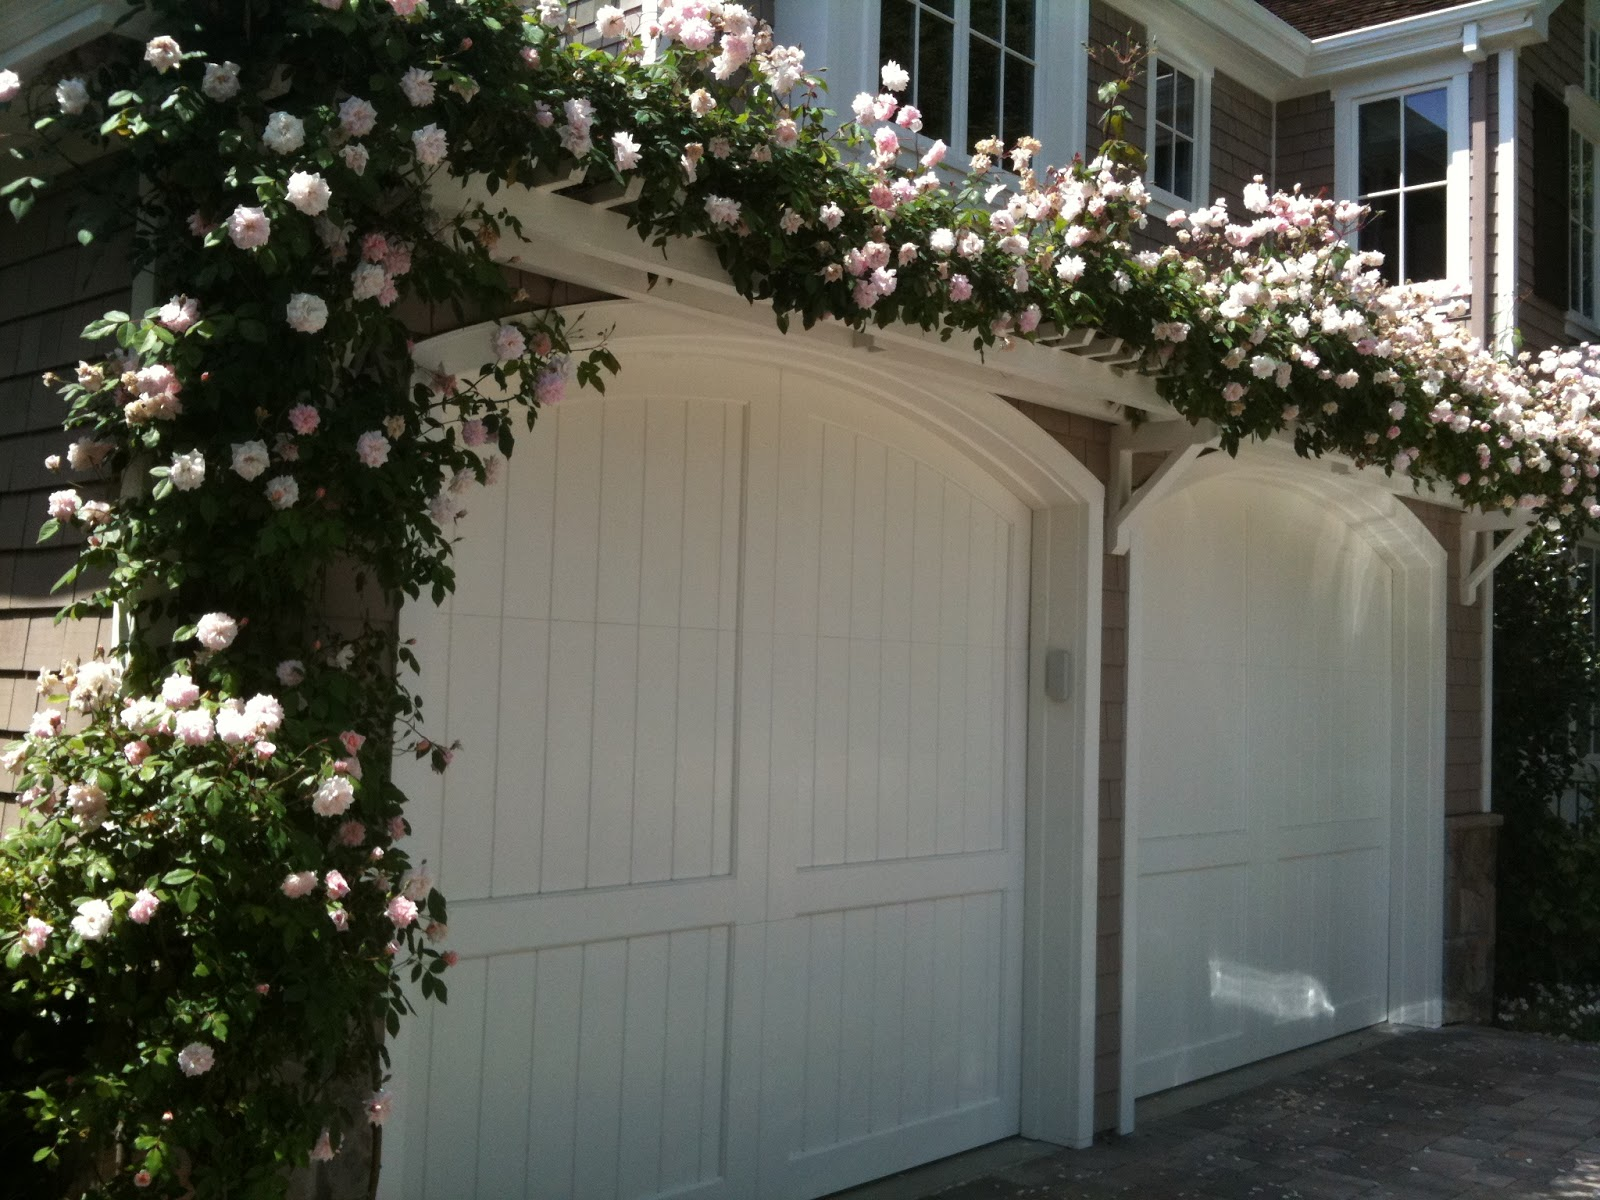 Trellis over garage door - May